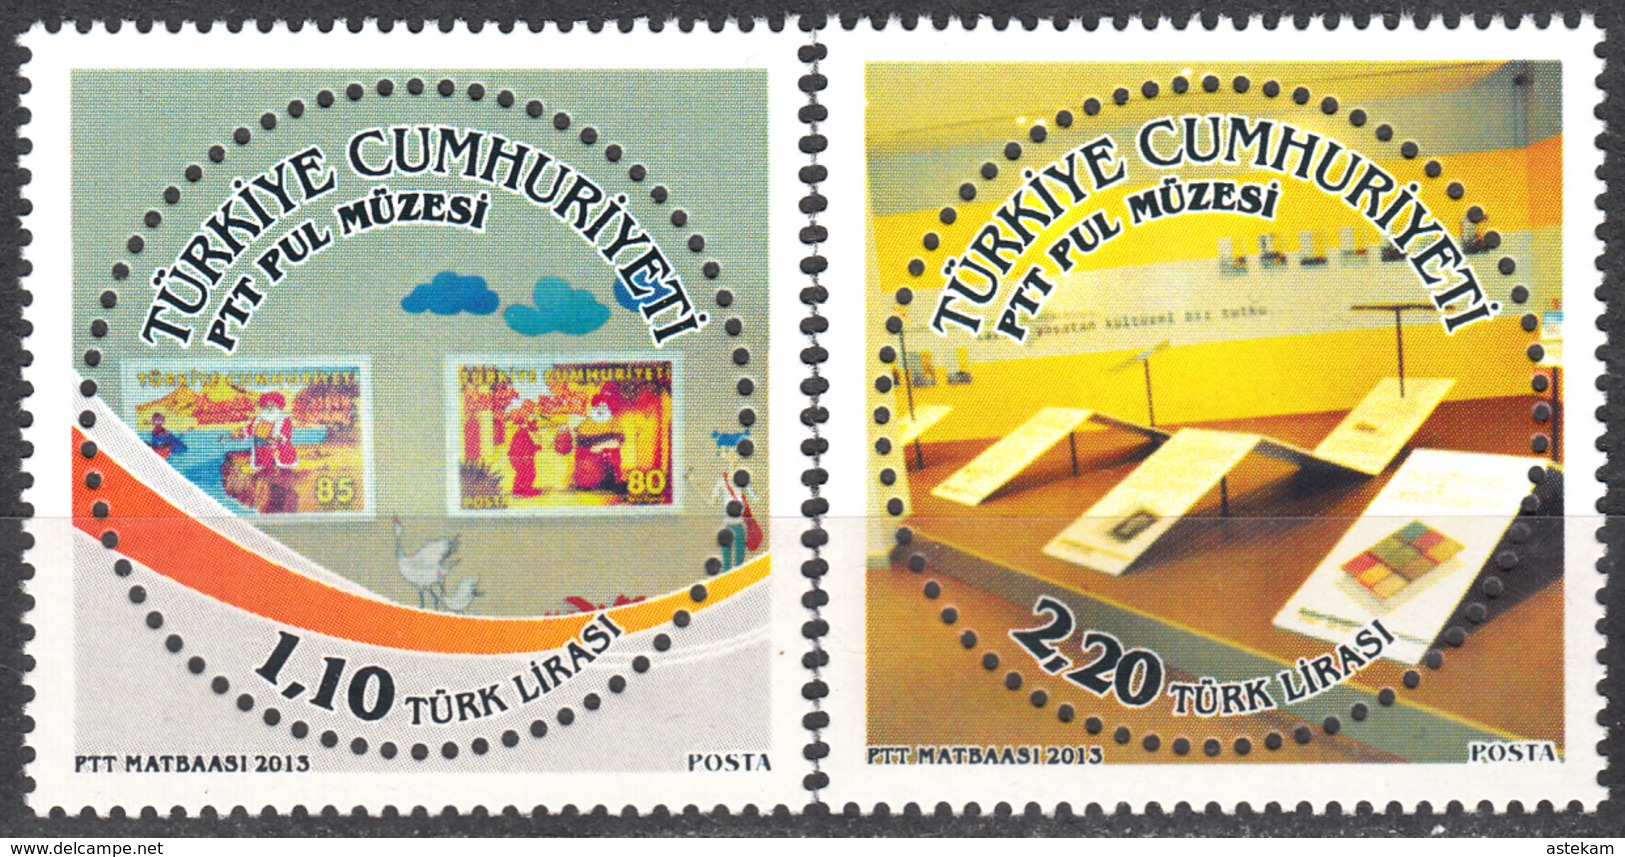 TURKEY 2013, STAMP ON STAMP, TURKISH MUSEUM Of The POST STAMPS, BIRDS, MNH SET (MiNo 4072/73) In GOOD QUALITY, *** - Nuevos